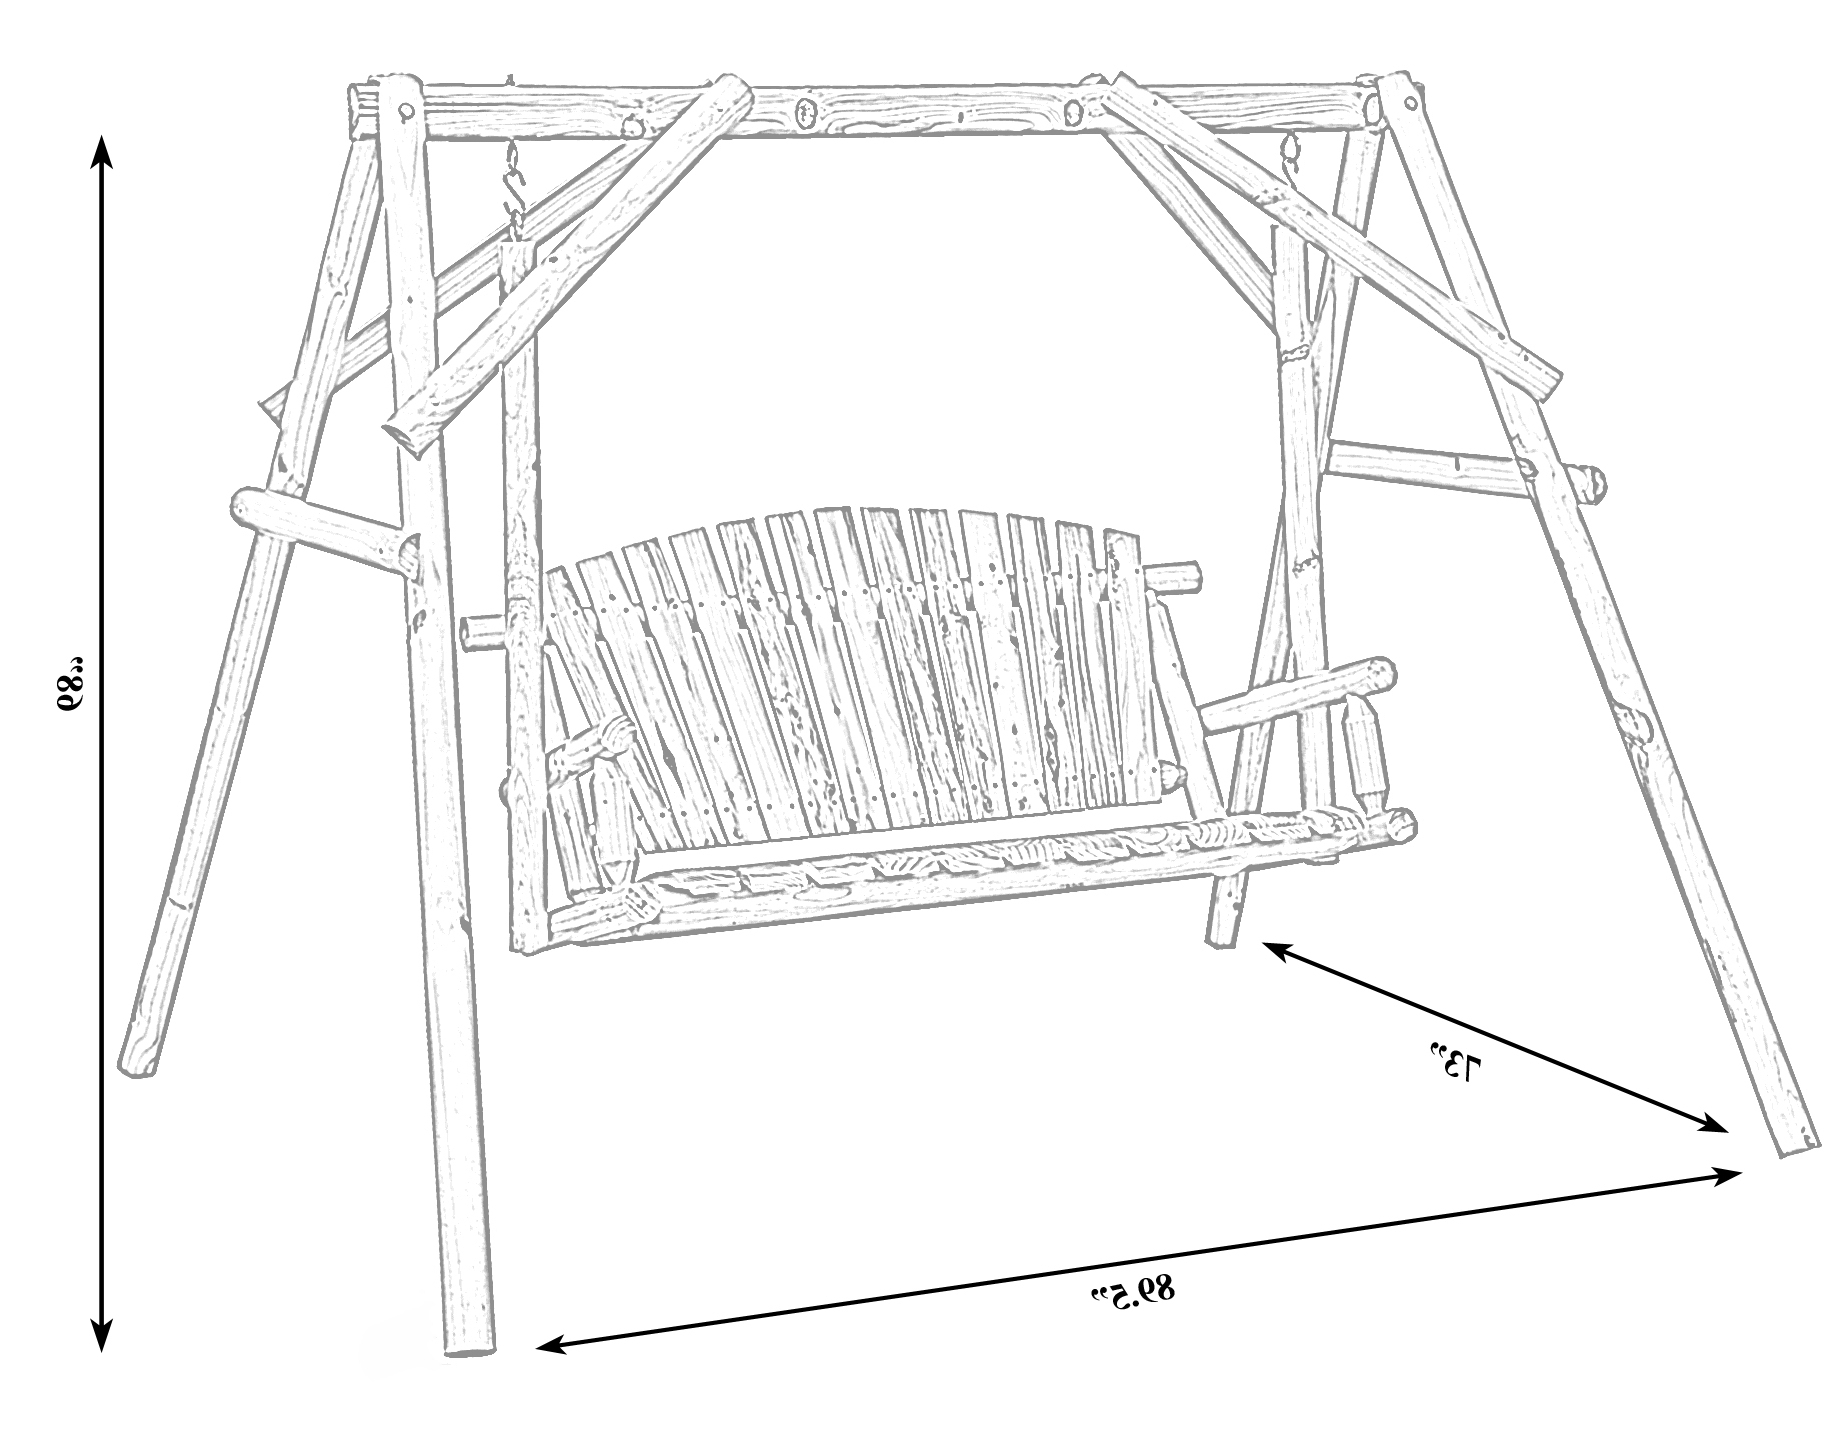 Fashionable Swing 651355234703 Bench Wooden Wooden Wood Log Patio 2 Pertaining To 2 Person Black Wood Outdoor Swings (View 16 of 25)